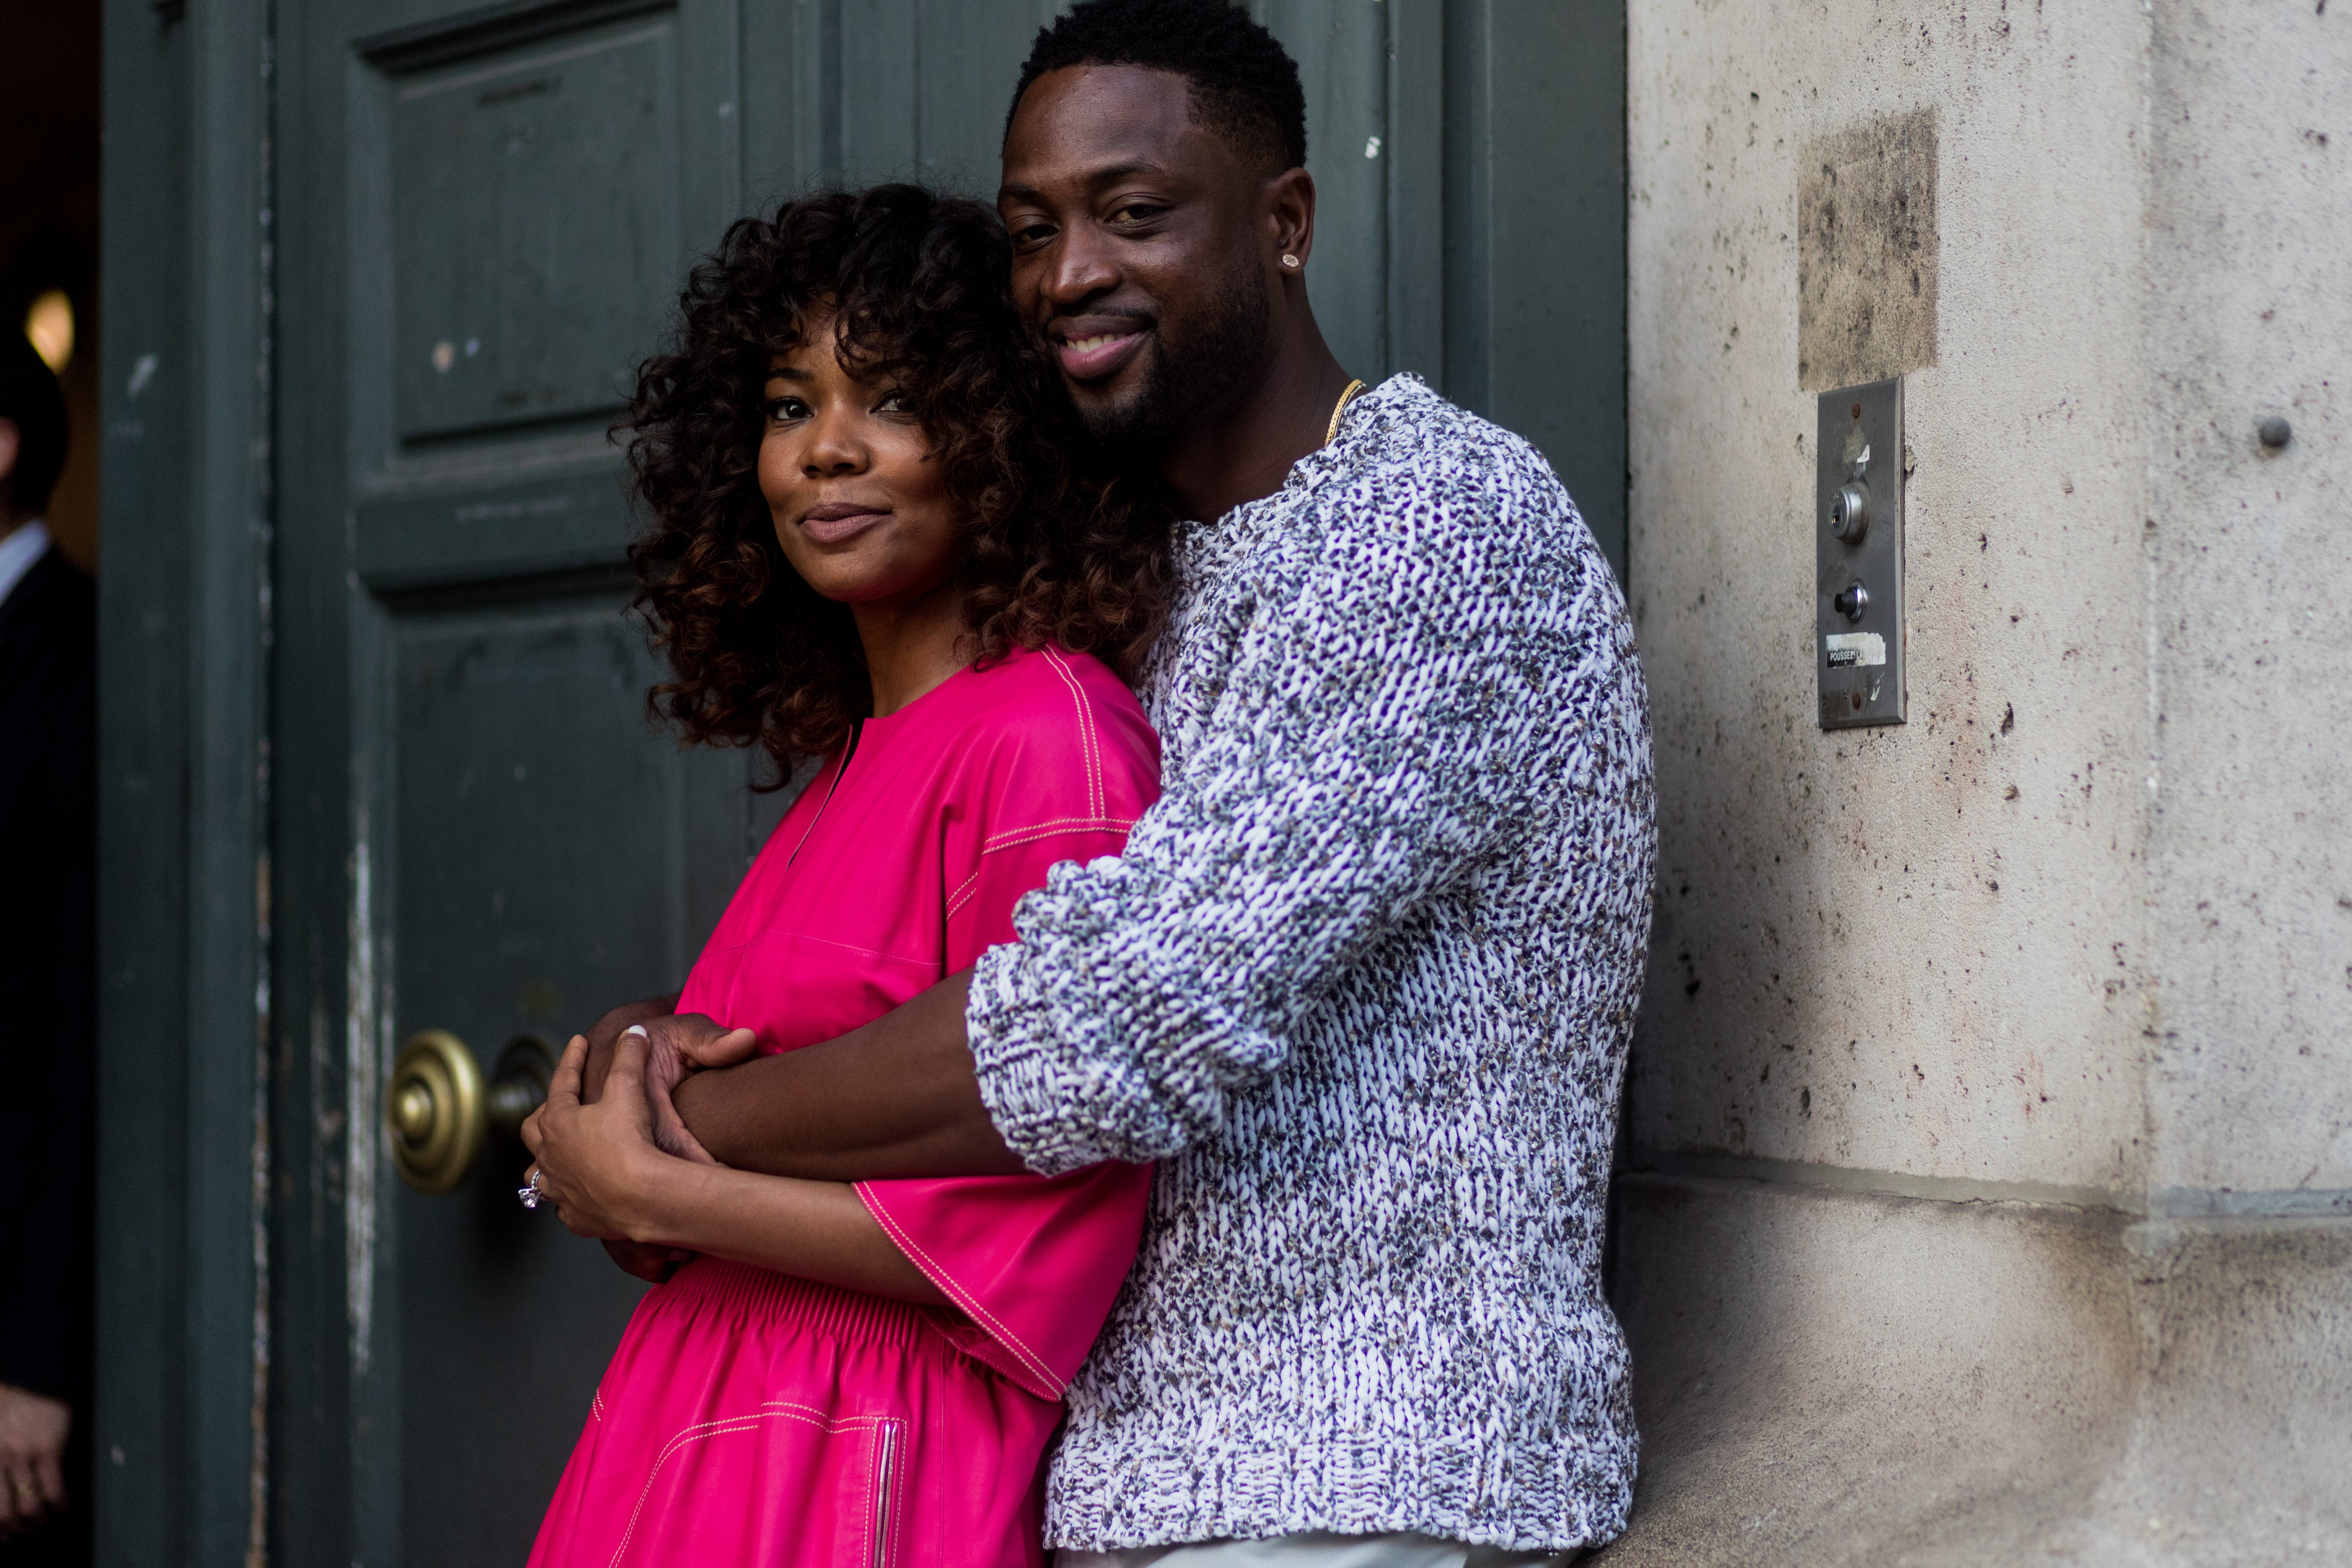 This Video Of Gabrielle Union And Dwyane Wade Dancing Together Is The Cutest Thing Ever